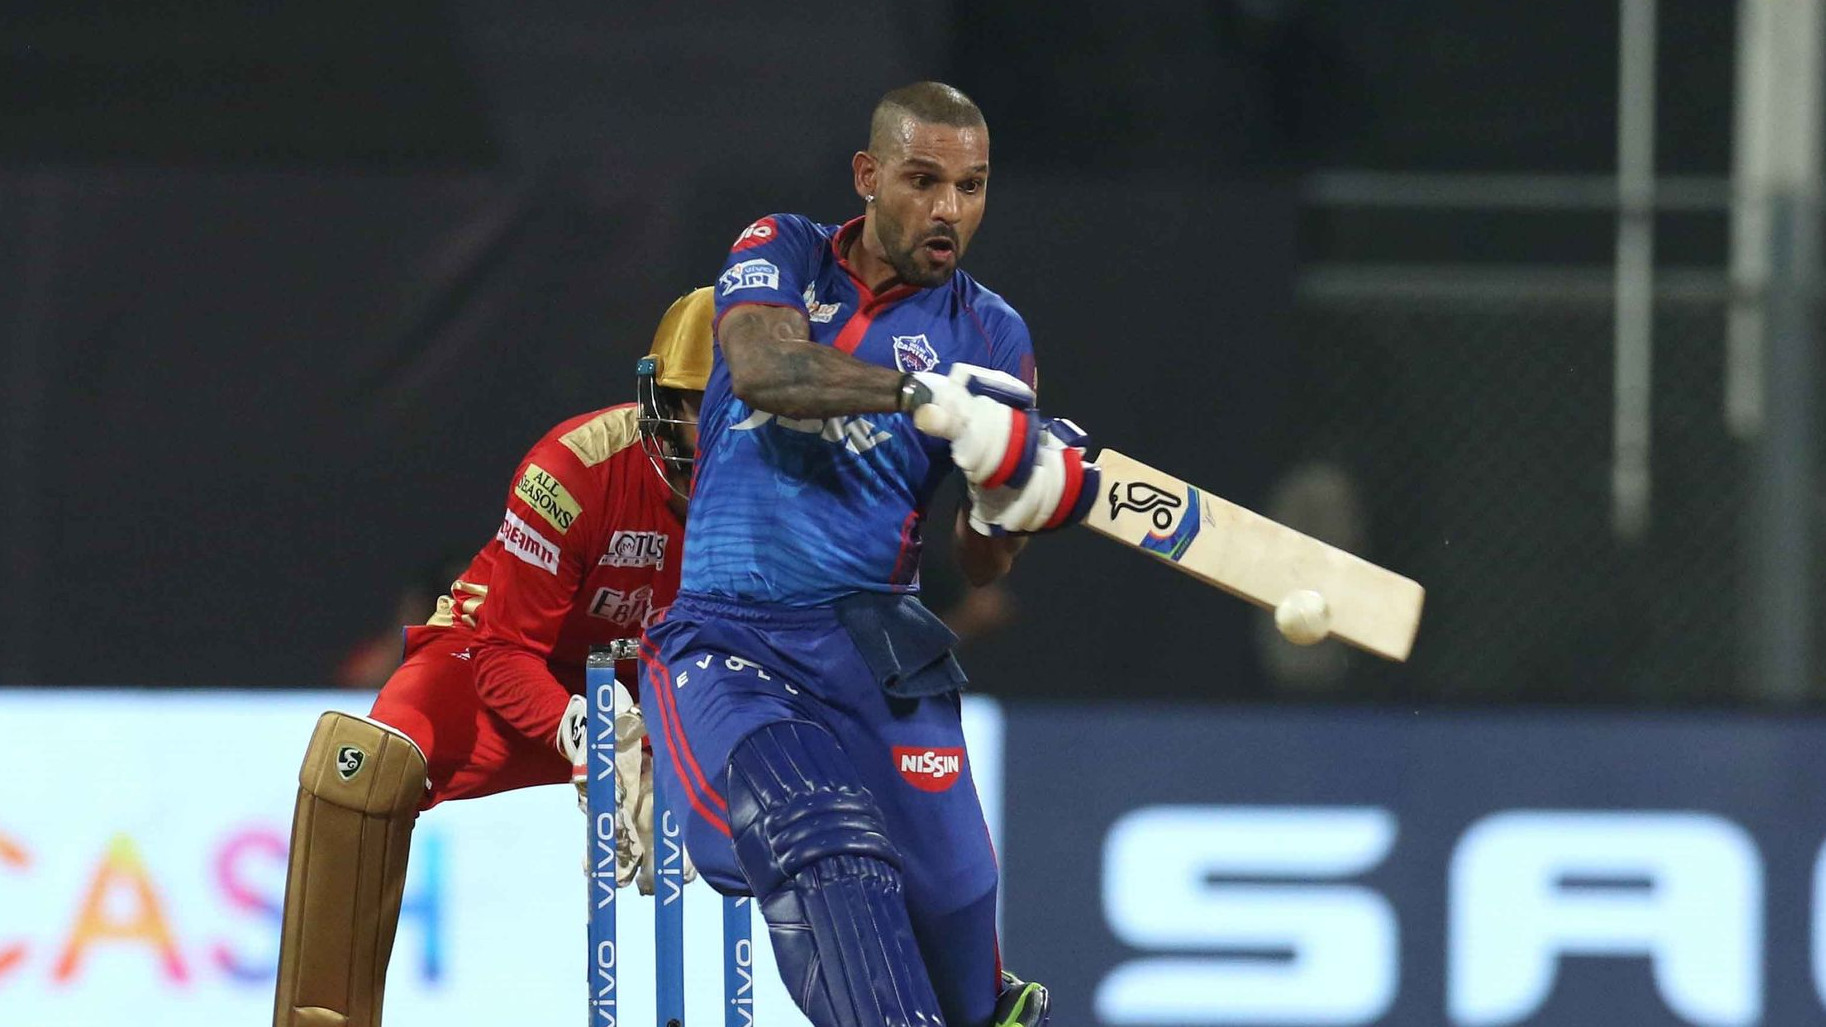 IPL 2021: Easier to bat second at Wankhede because of dew- opines Shikhar Dhawan